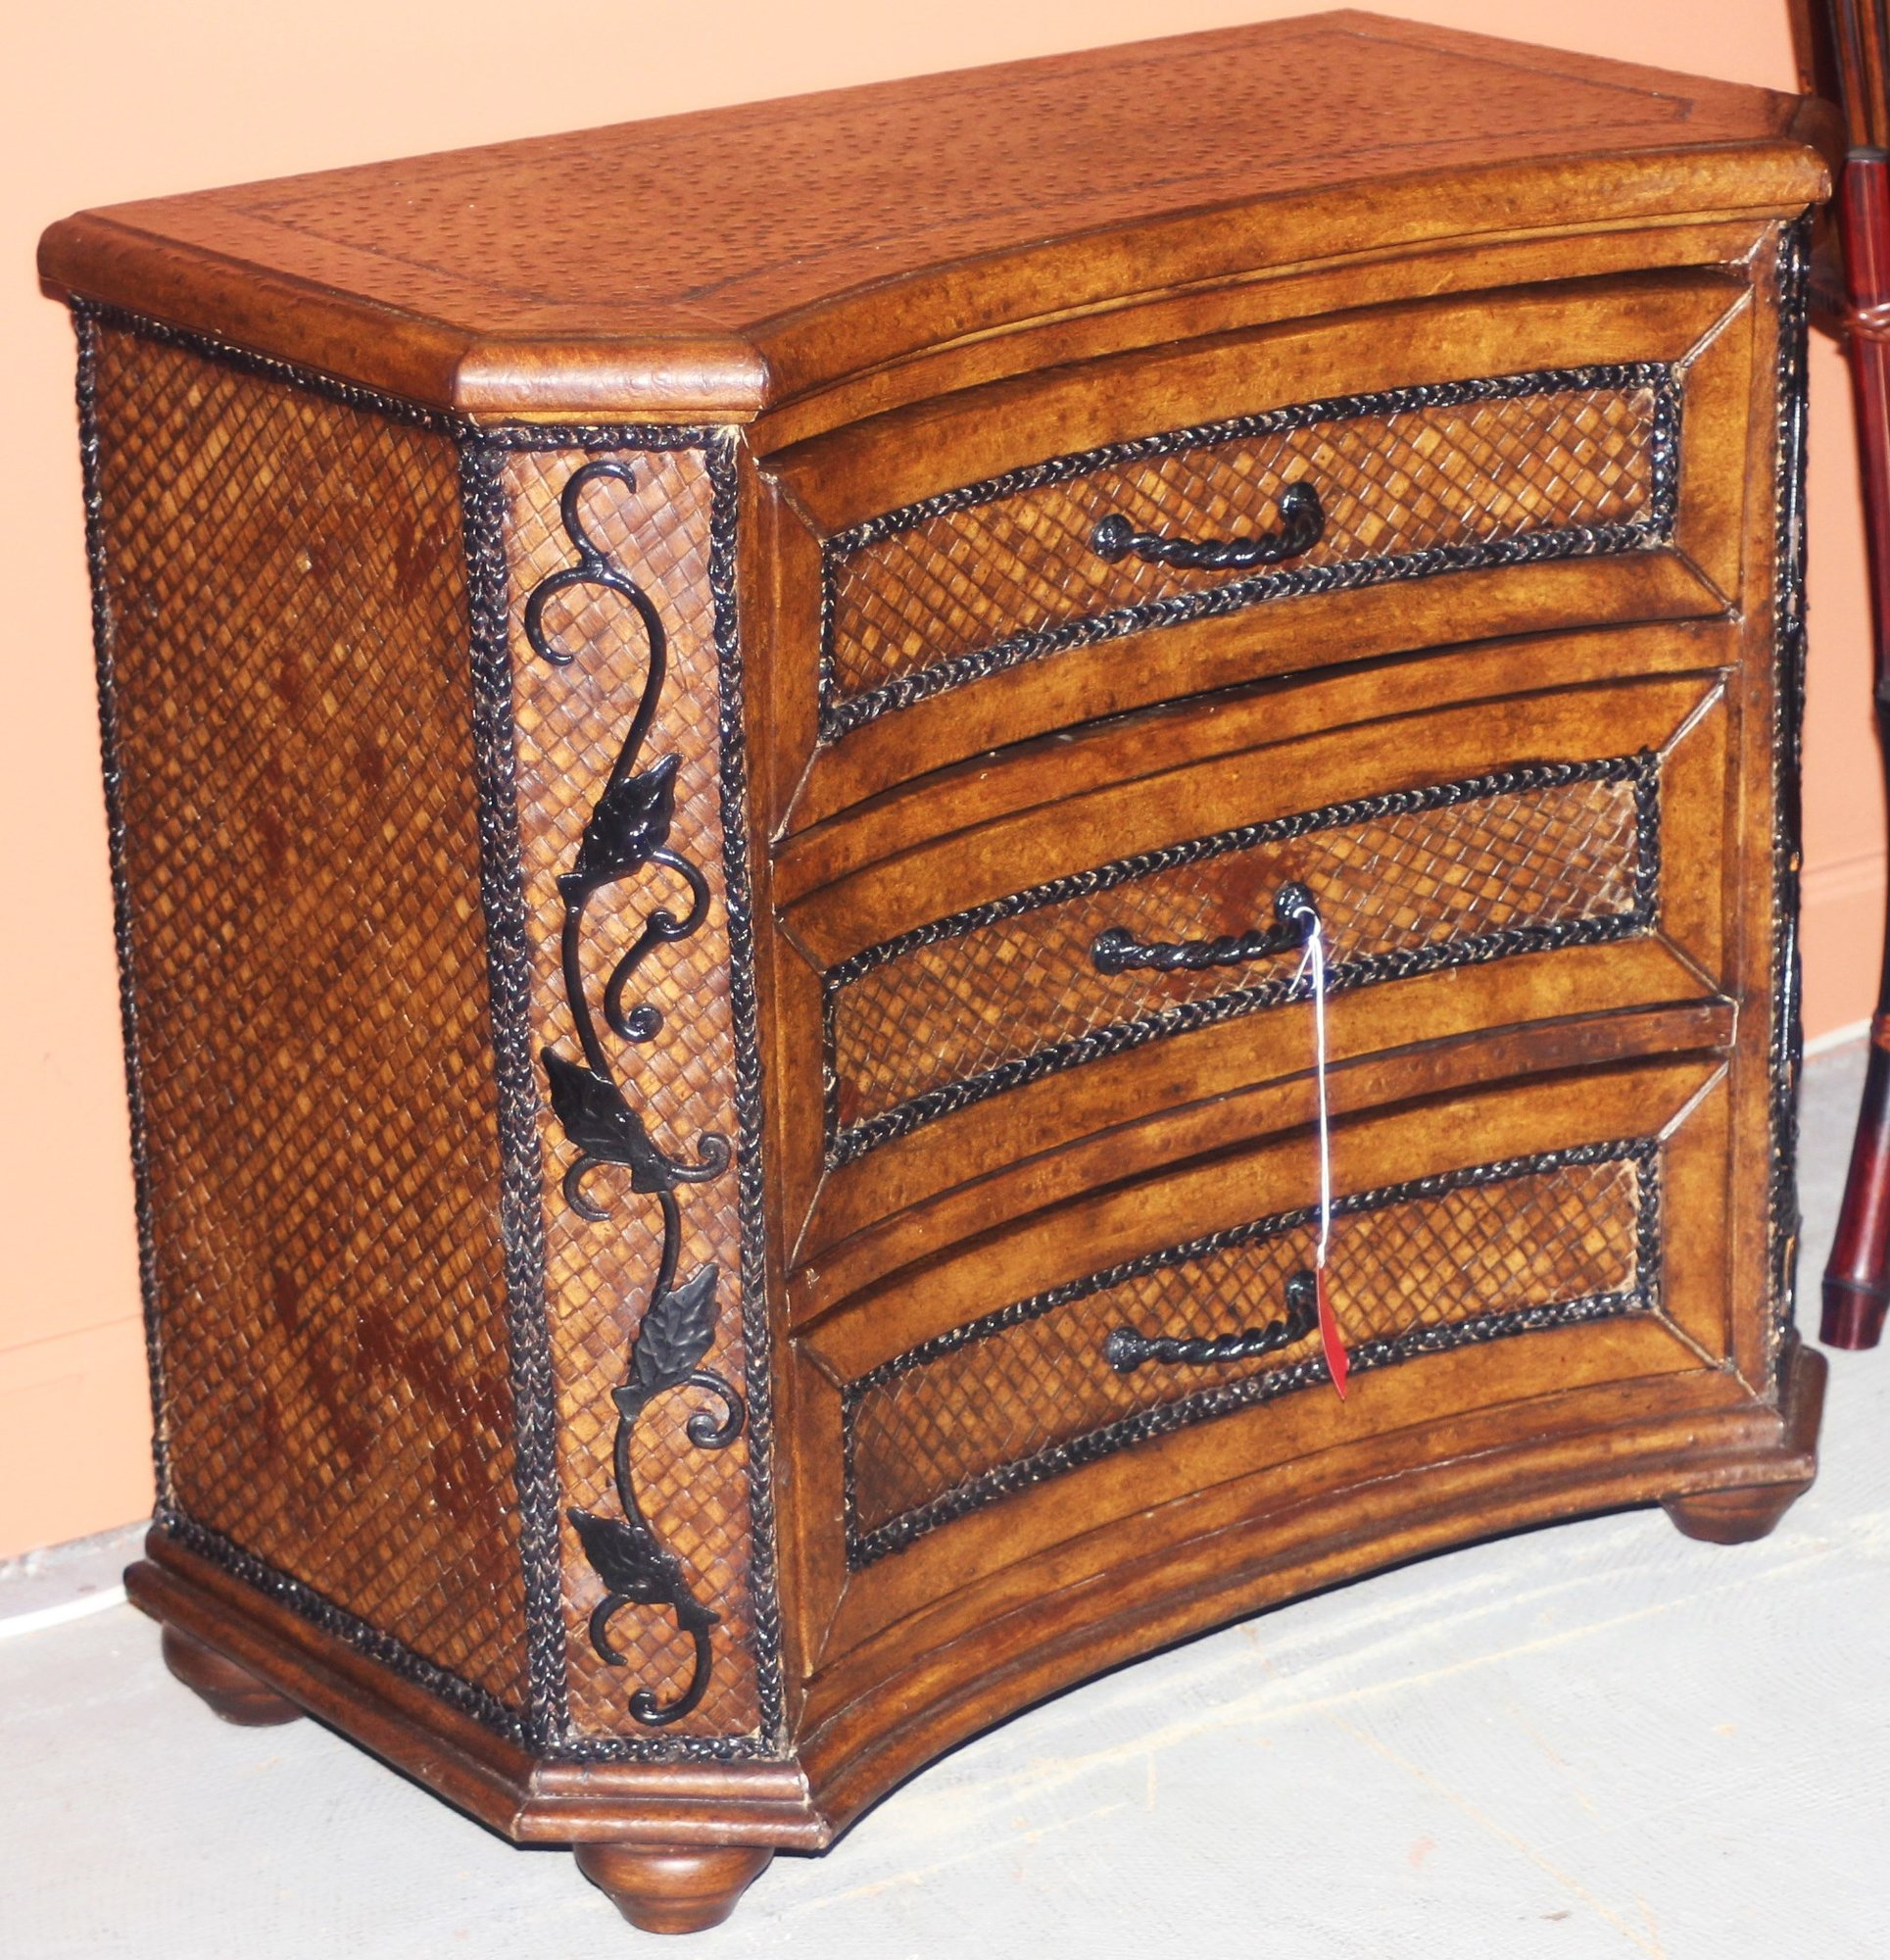 Used Furniture Gallery: 1-17348 Small 3-Drawer Faux Armadillo Chest